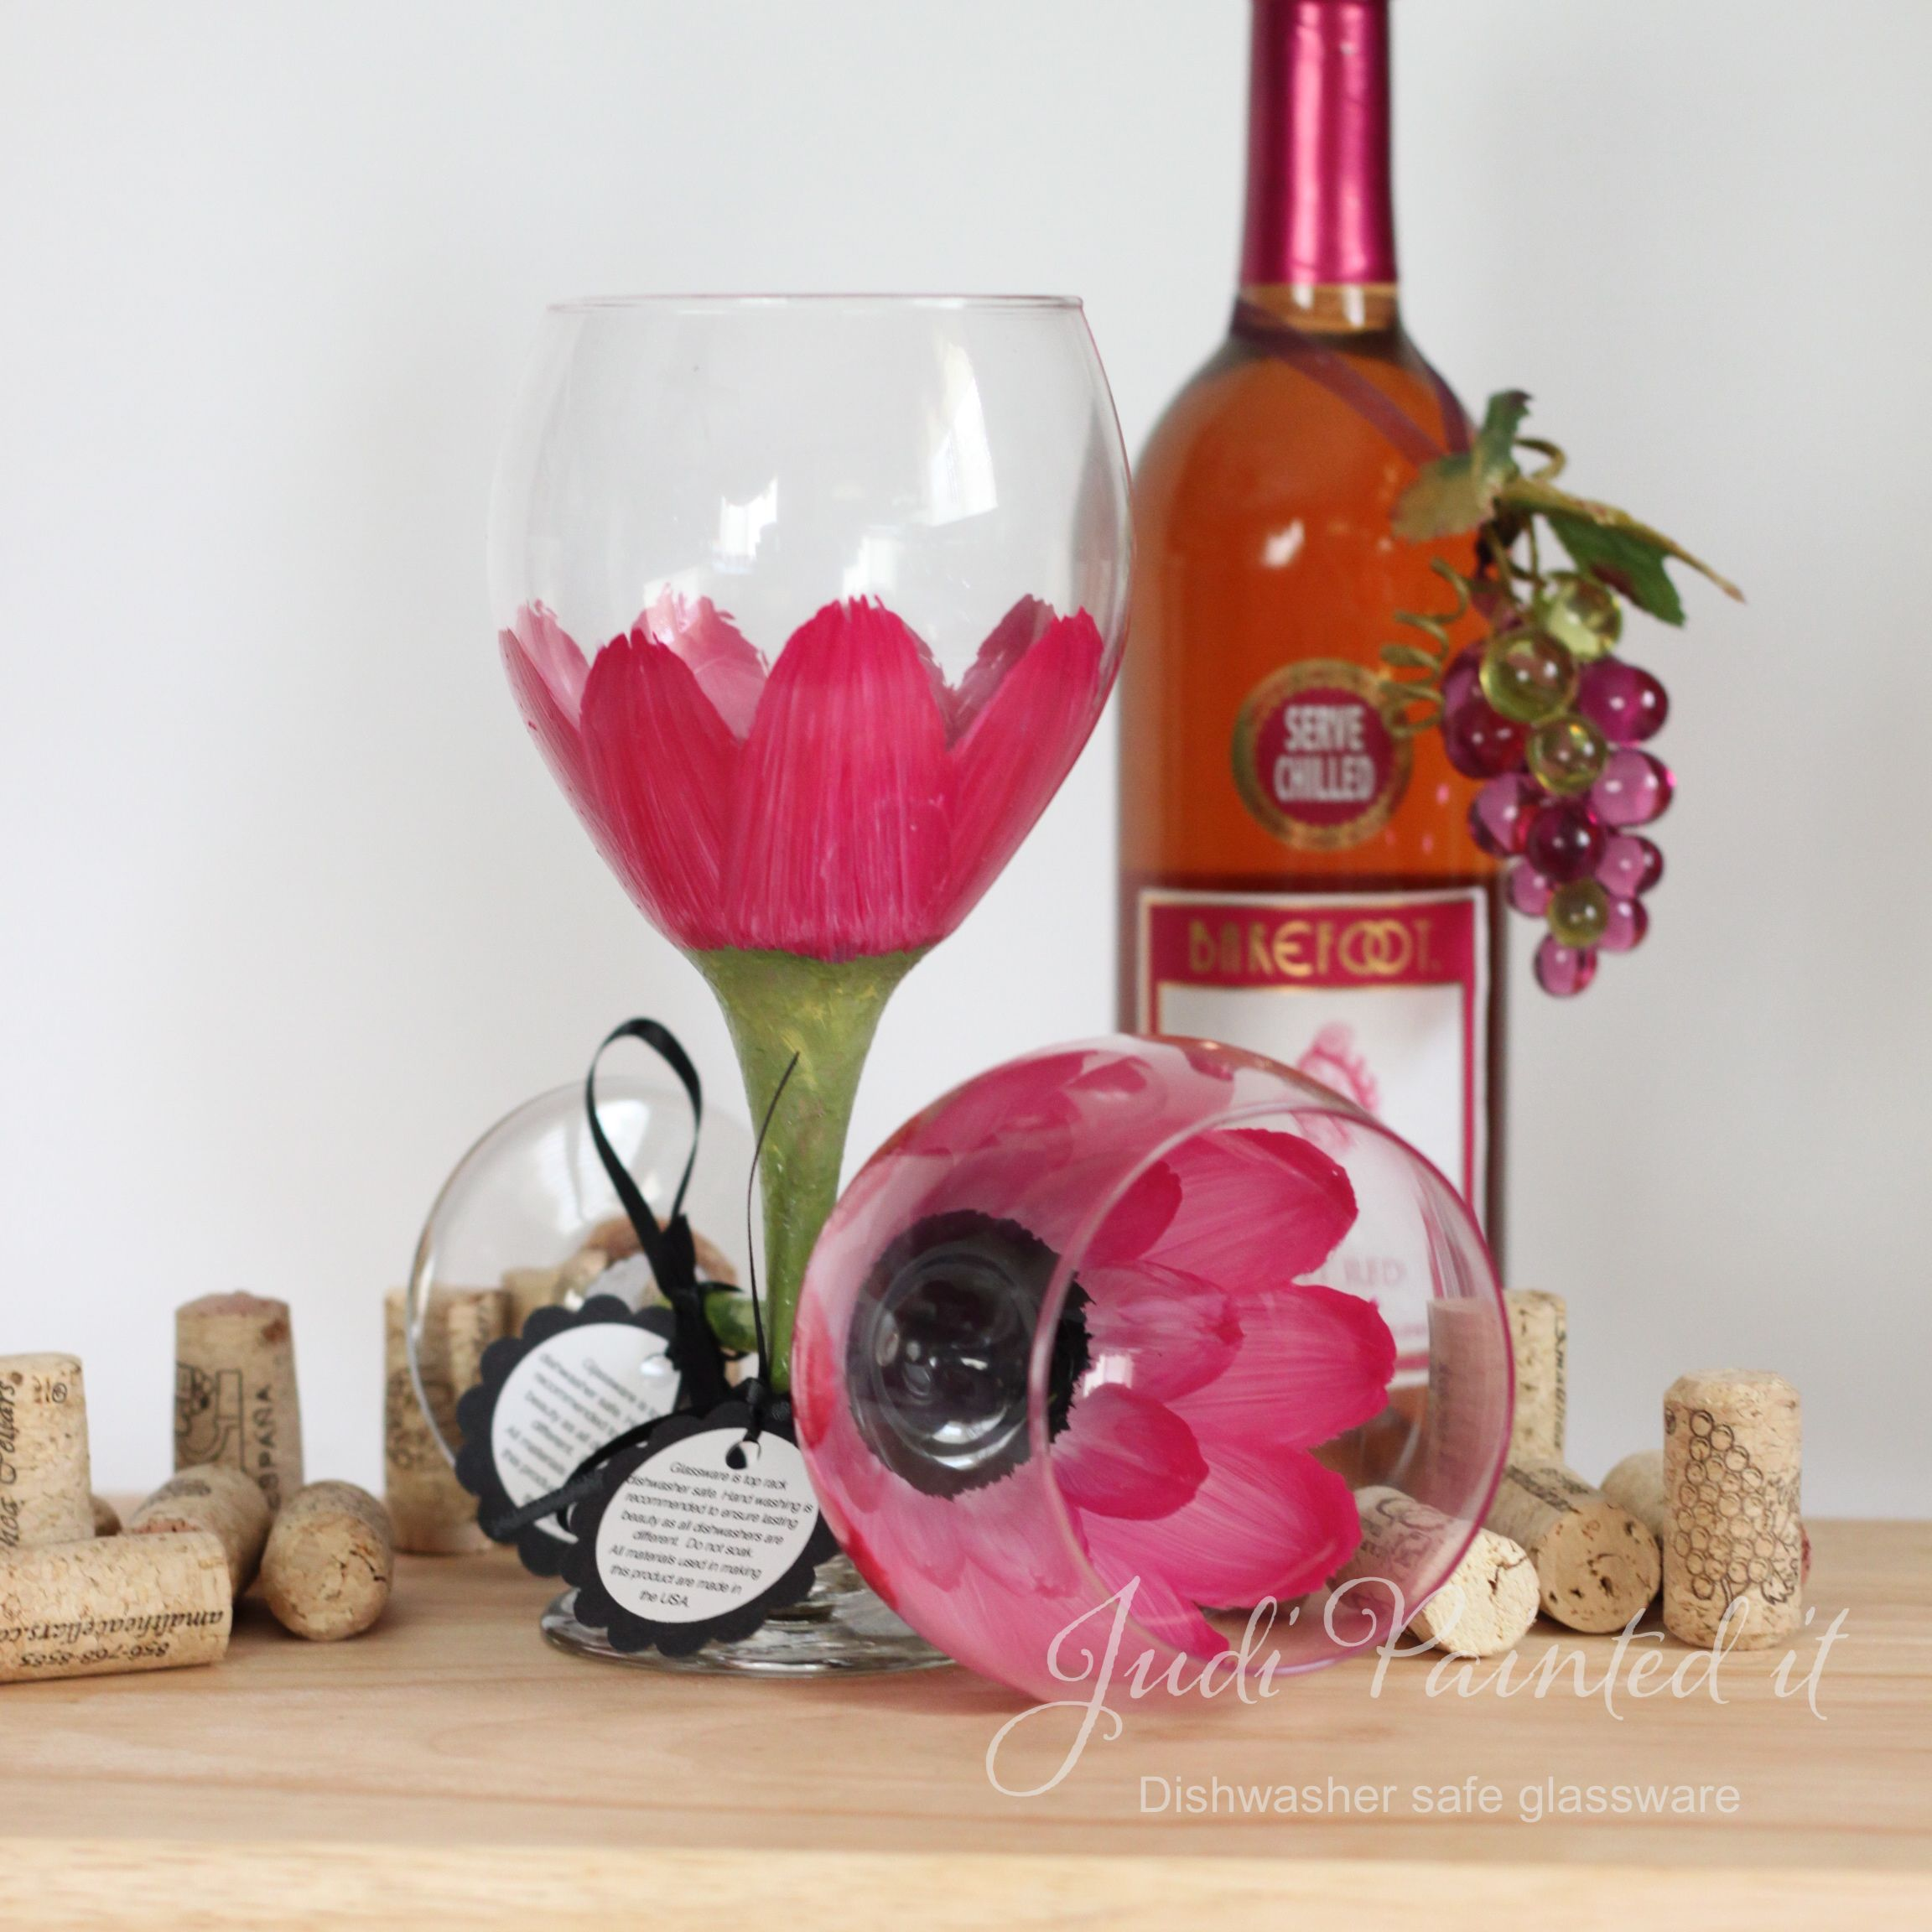 Uncategorized Dishwasher Safe Paint For Glass paint wine glass bing images ideas pinterest explore safe hand painted glasses and more